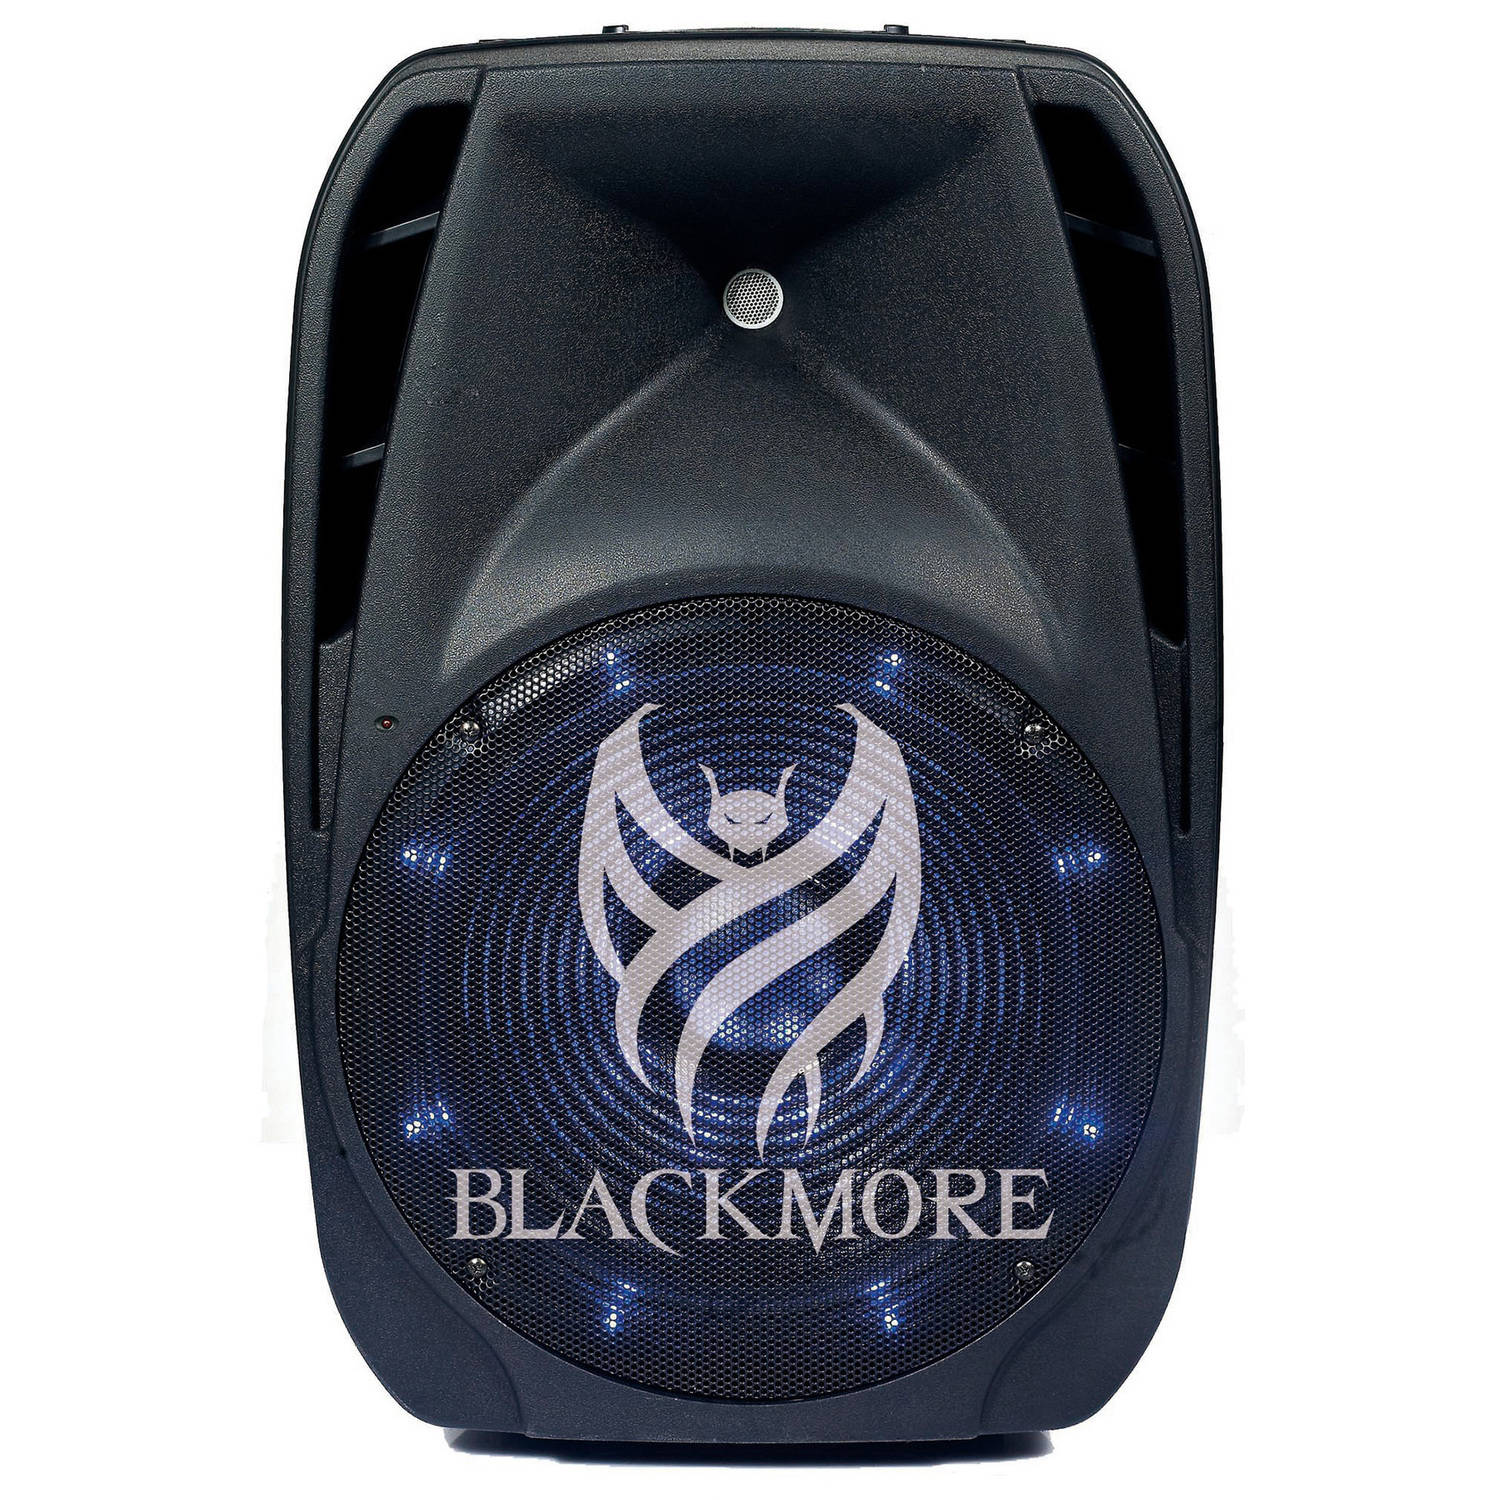 Blackmore Electronics BJS-152BT Blackmore Amplified DJ Speaker System, Black